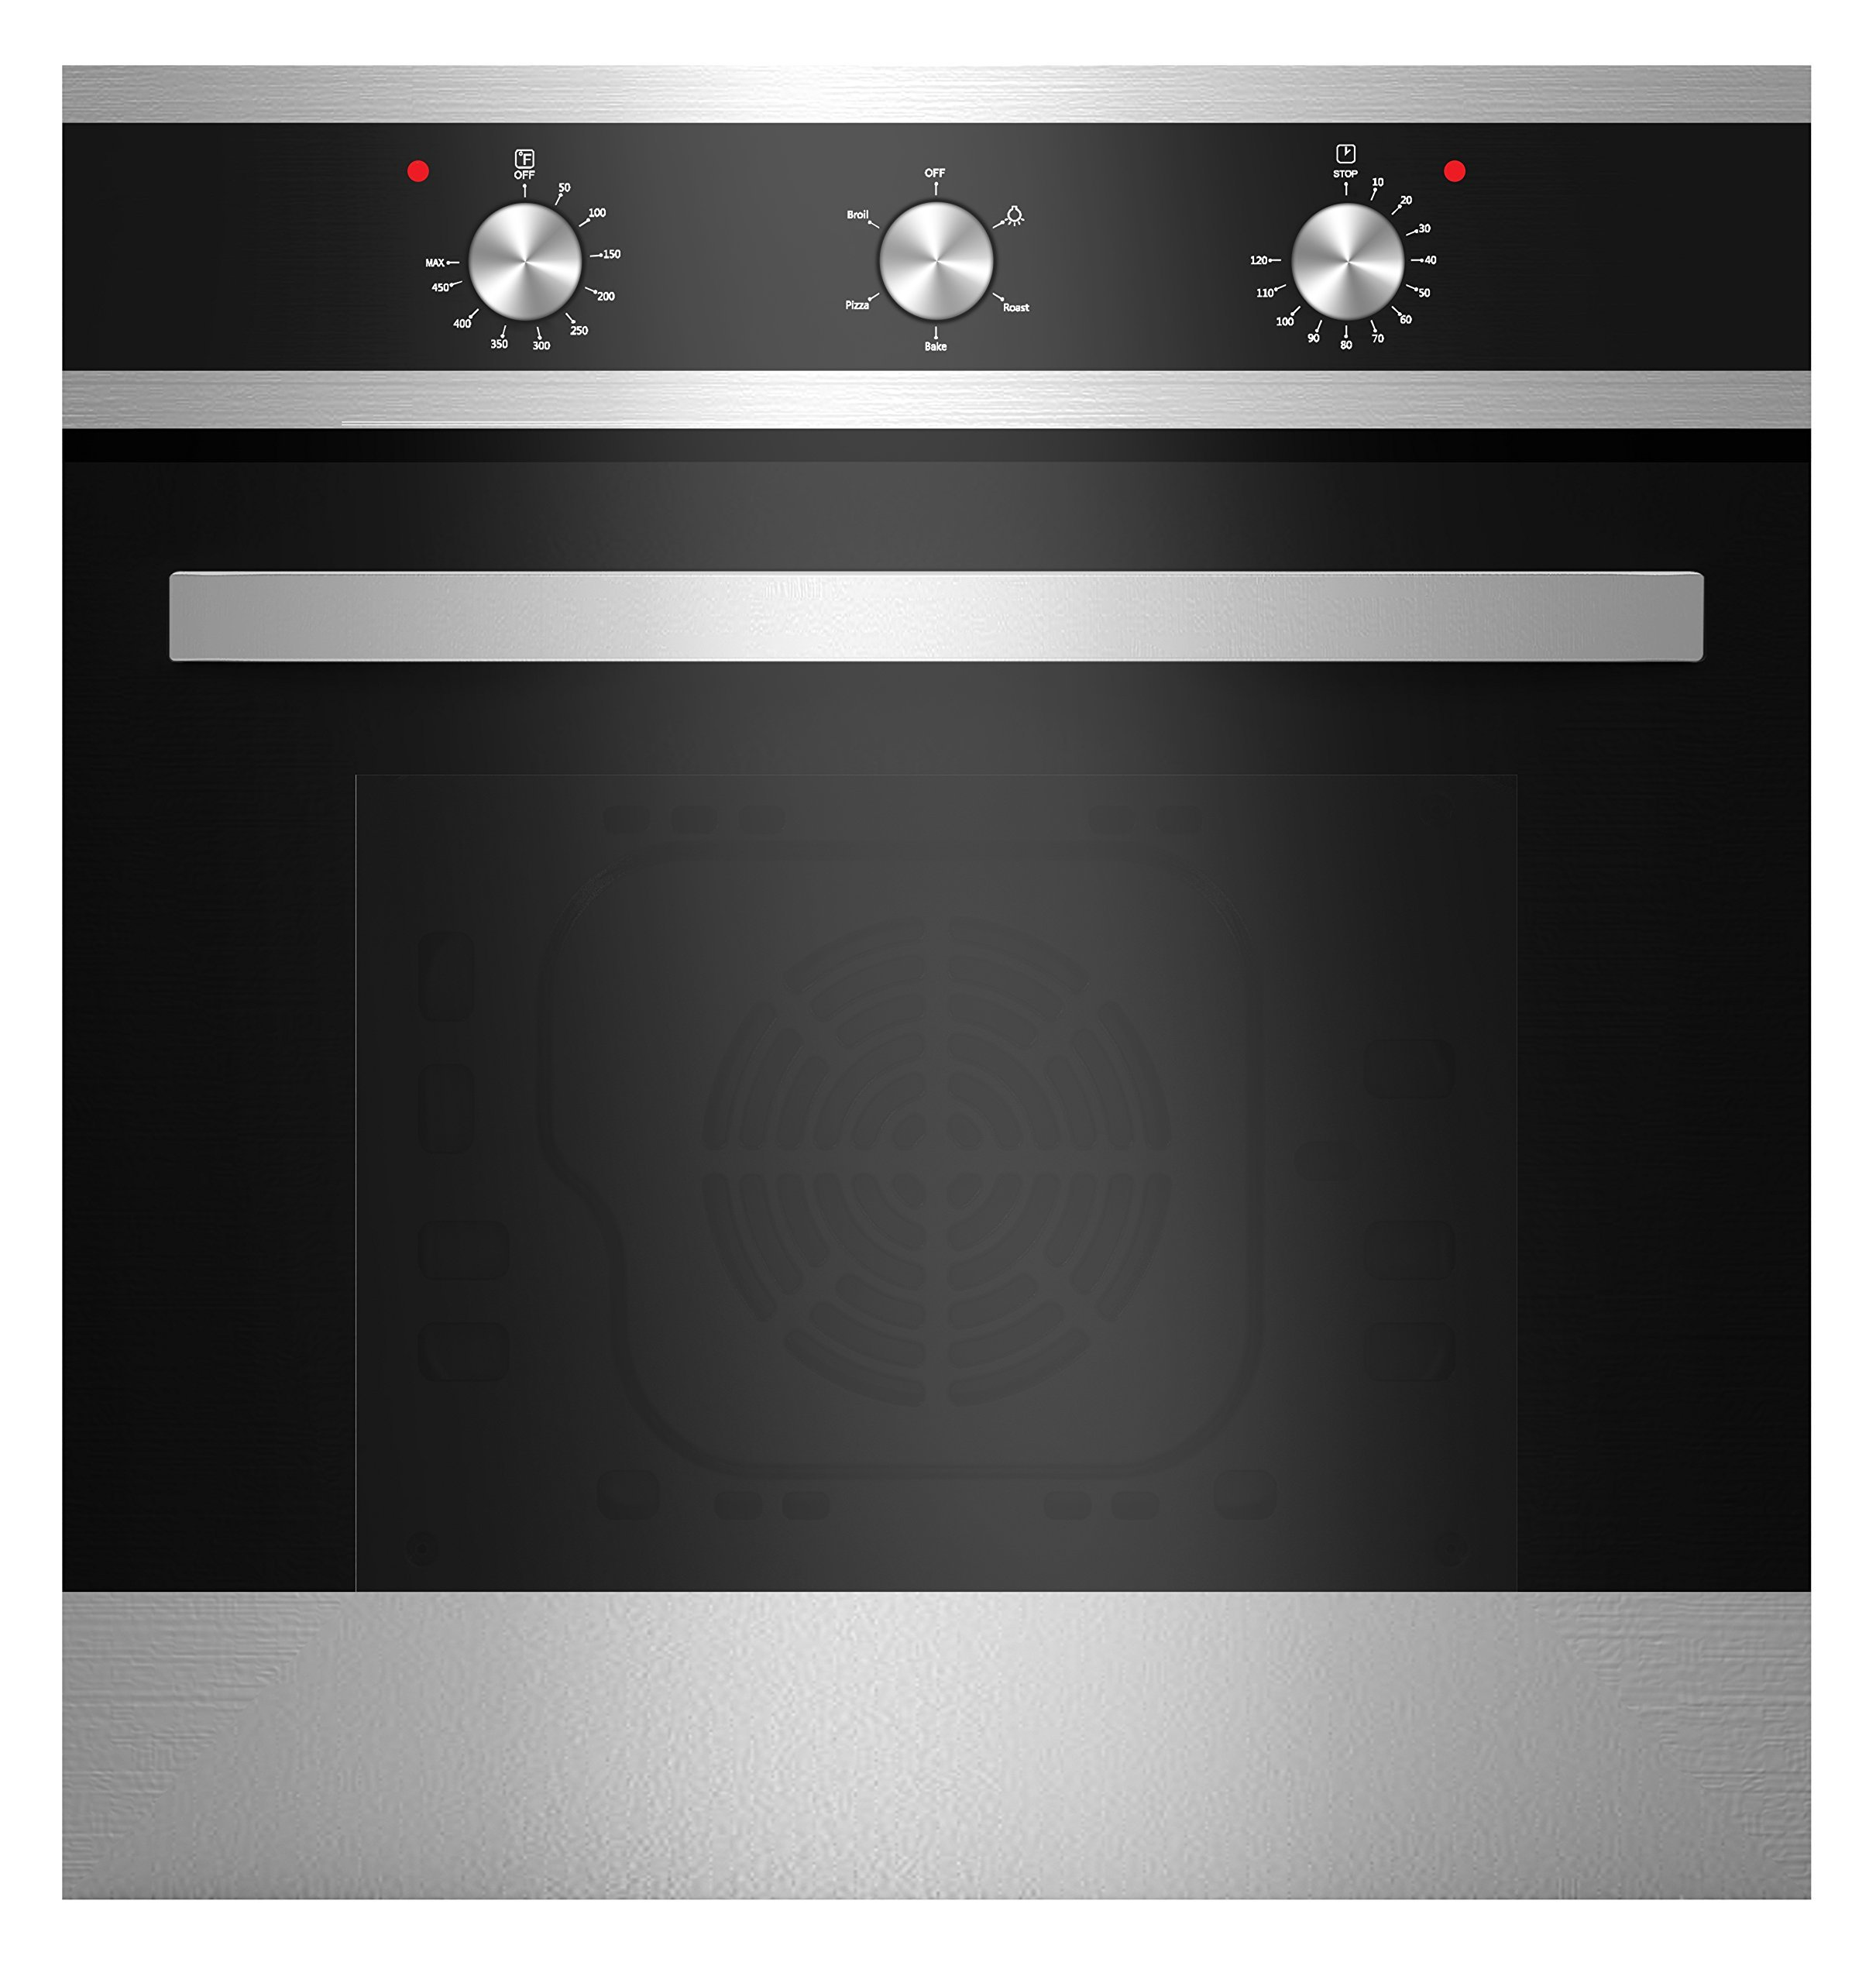 "Empava 24"" 4 Basic Cooking Functions Economy Electric Built-in Single Wall Oven EMPV-24WOA16"